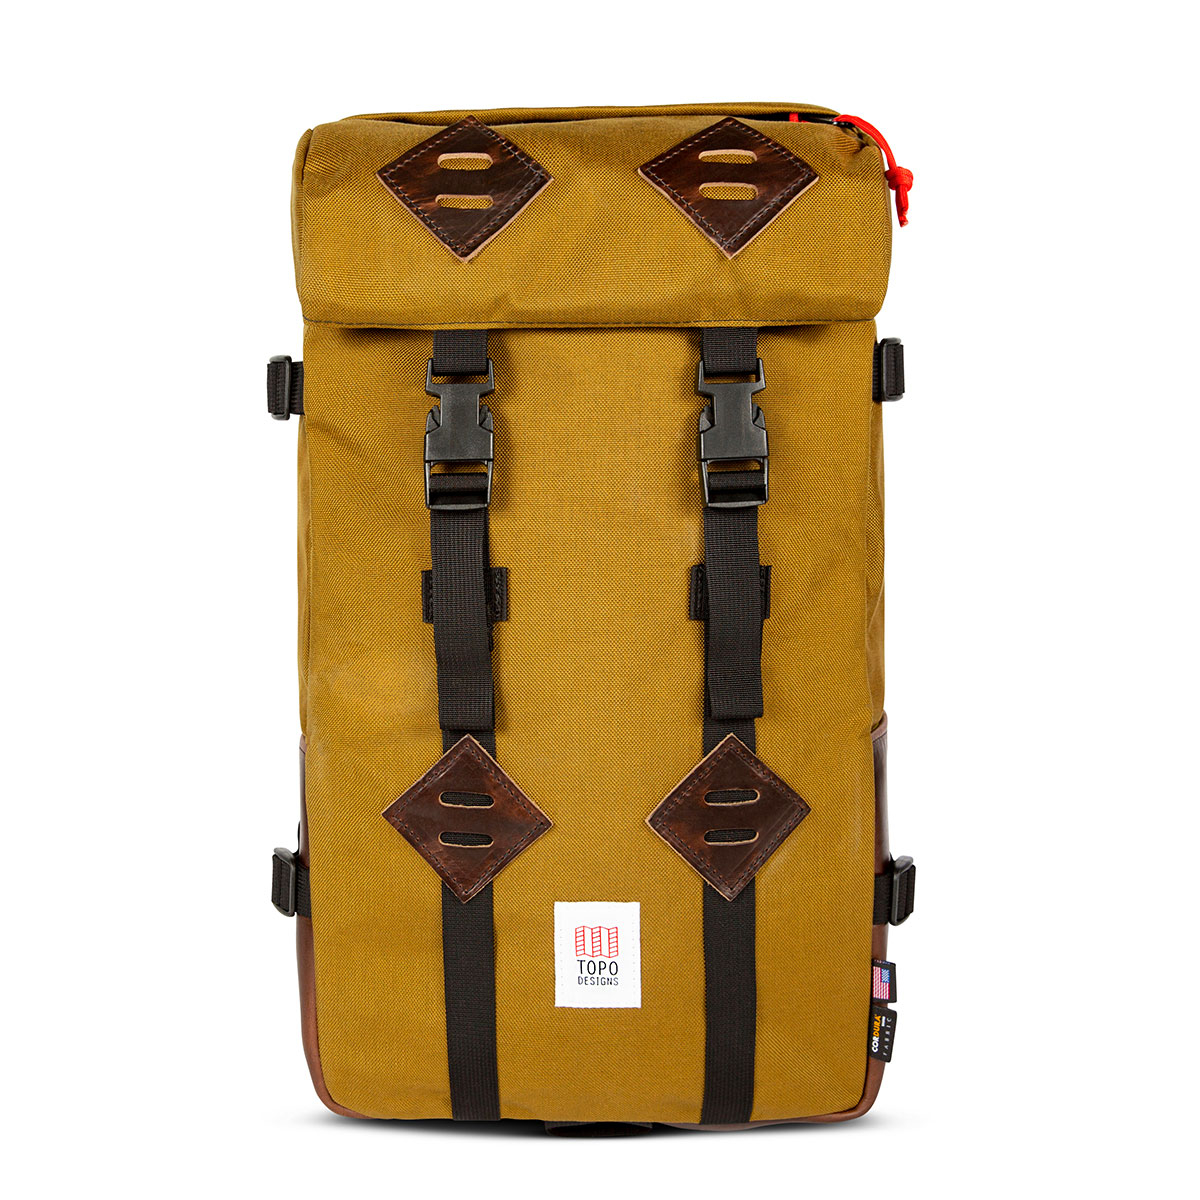 Topo Designs Klettersack Duck Brown/Brown Leather Lifestyle, classic backpack for men and women